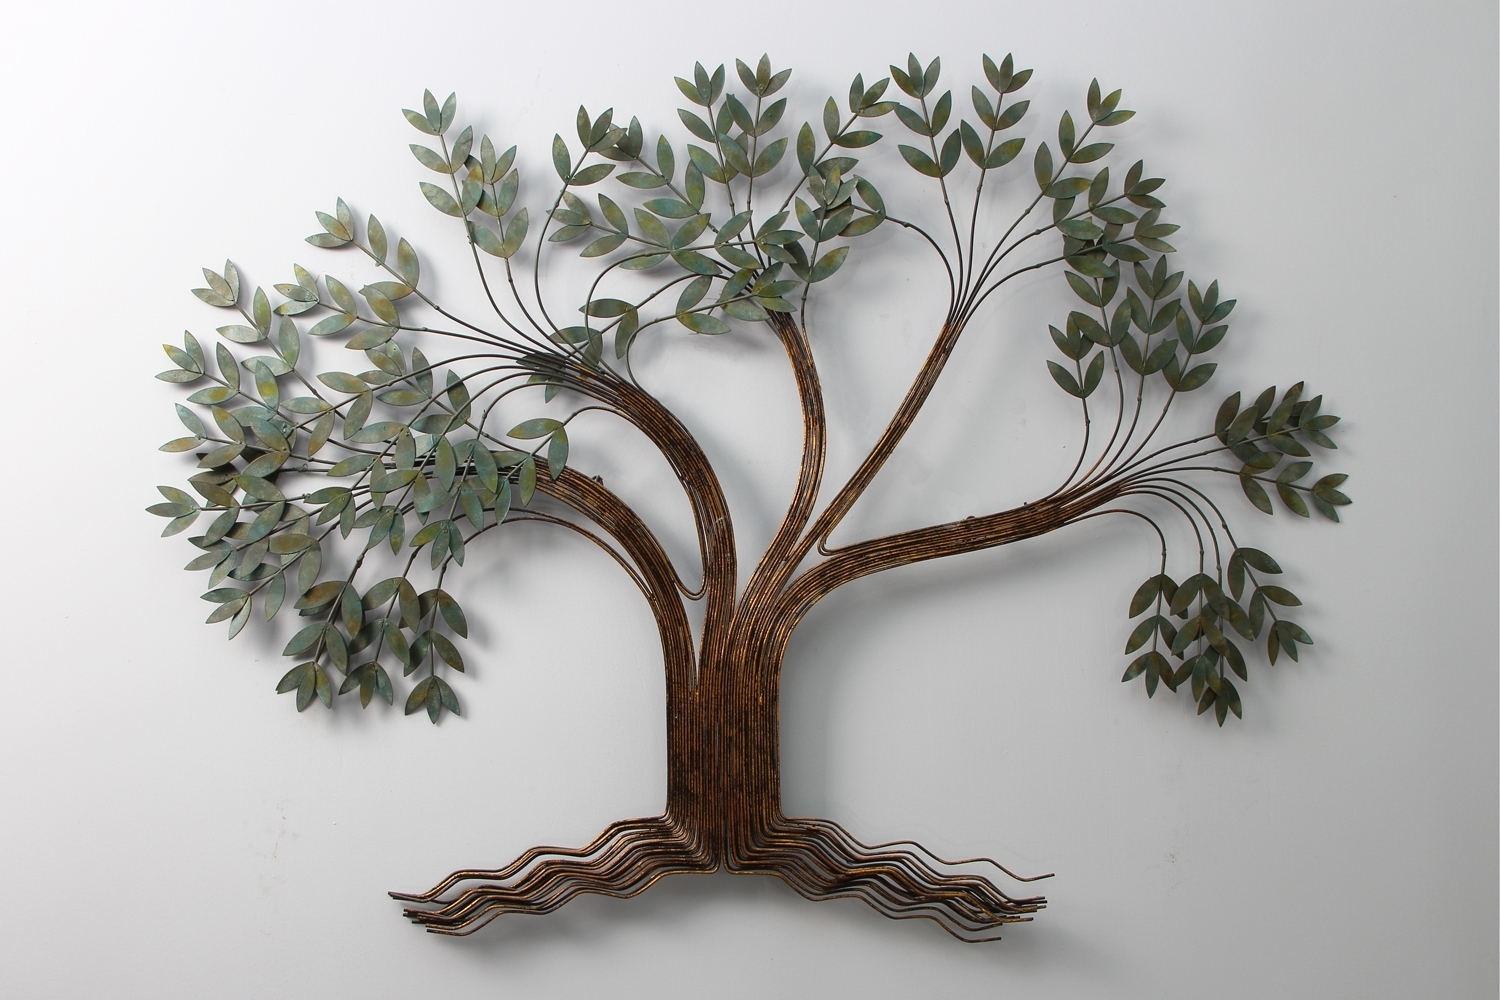 Metal Art Wall Decor Sculpture (View 8 of 15)